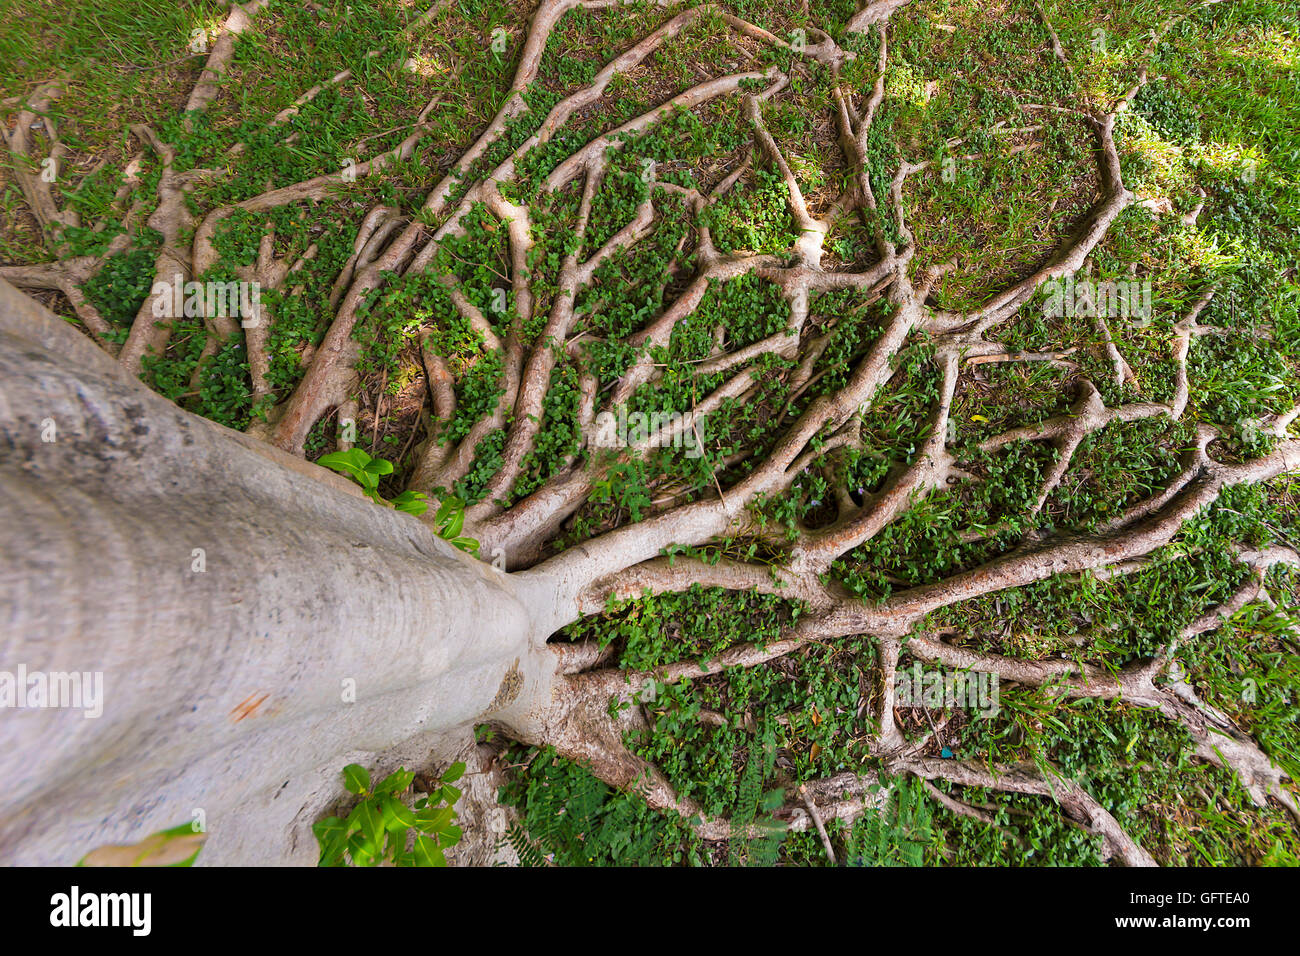 Tree roots spread on the lawn under the shade photographed from a high angle . - Stock Image